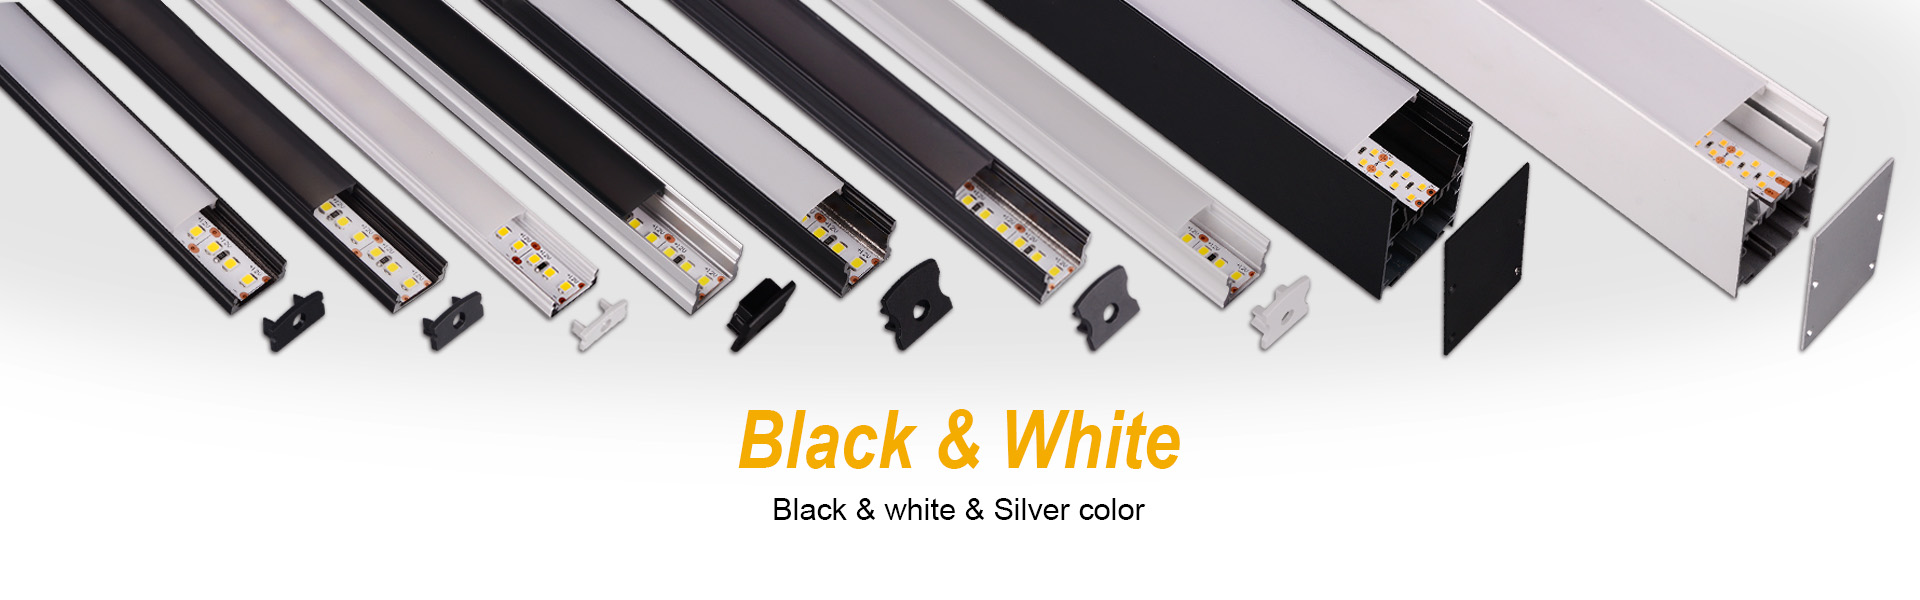 Black & White Aluminum Profile